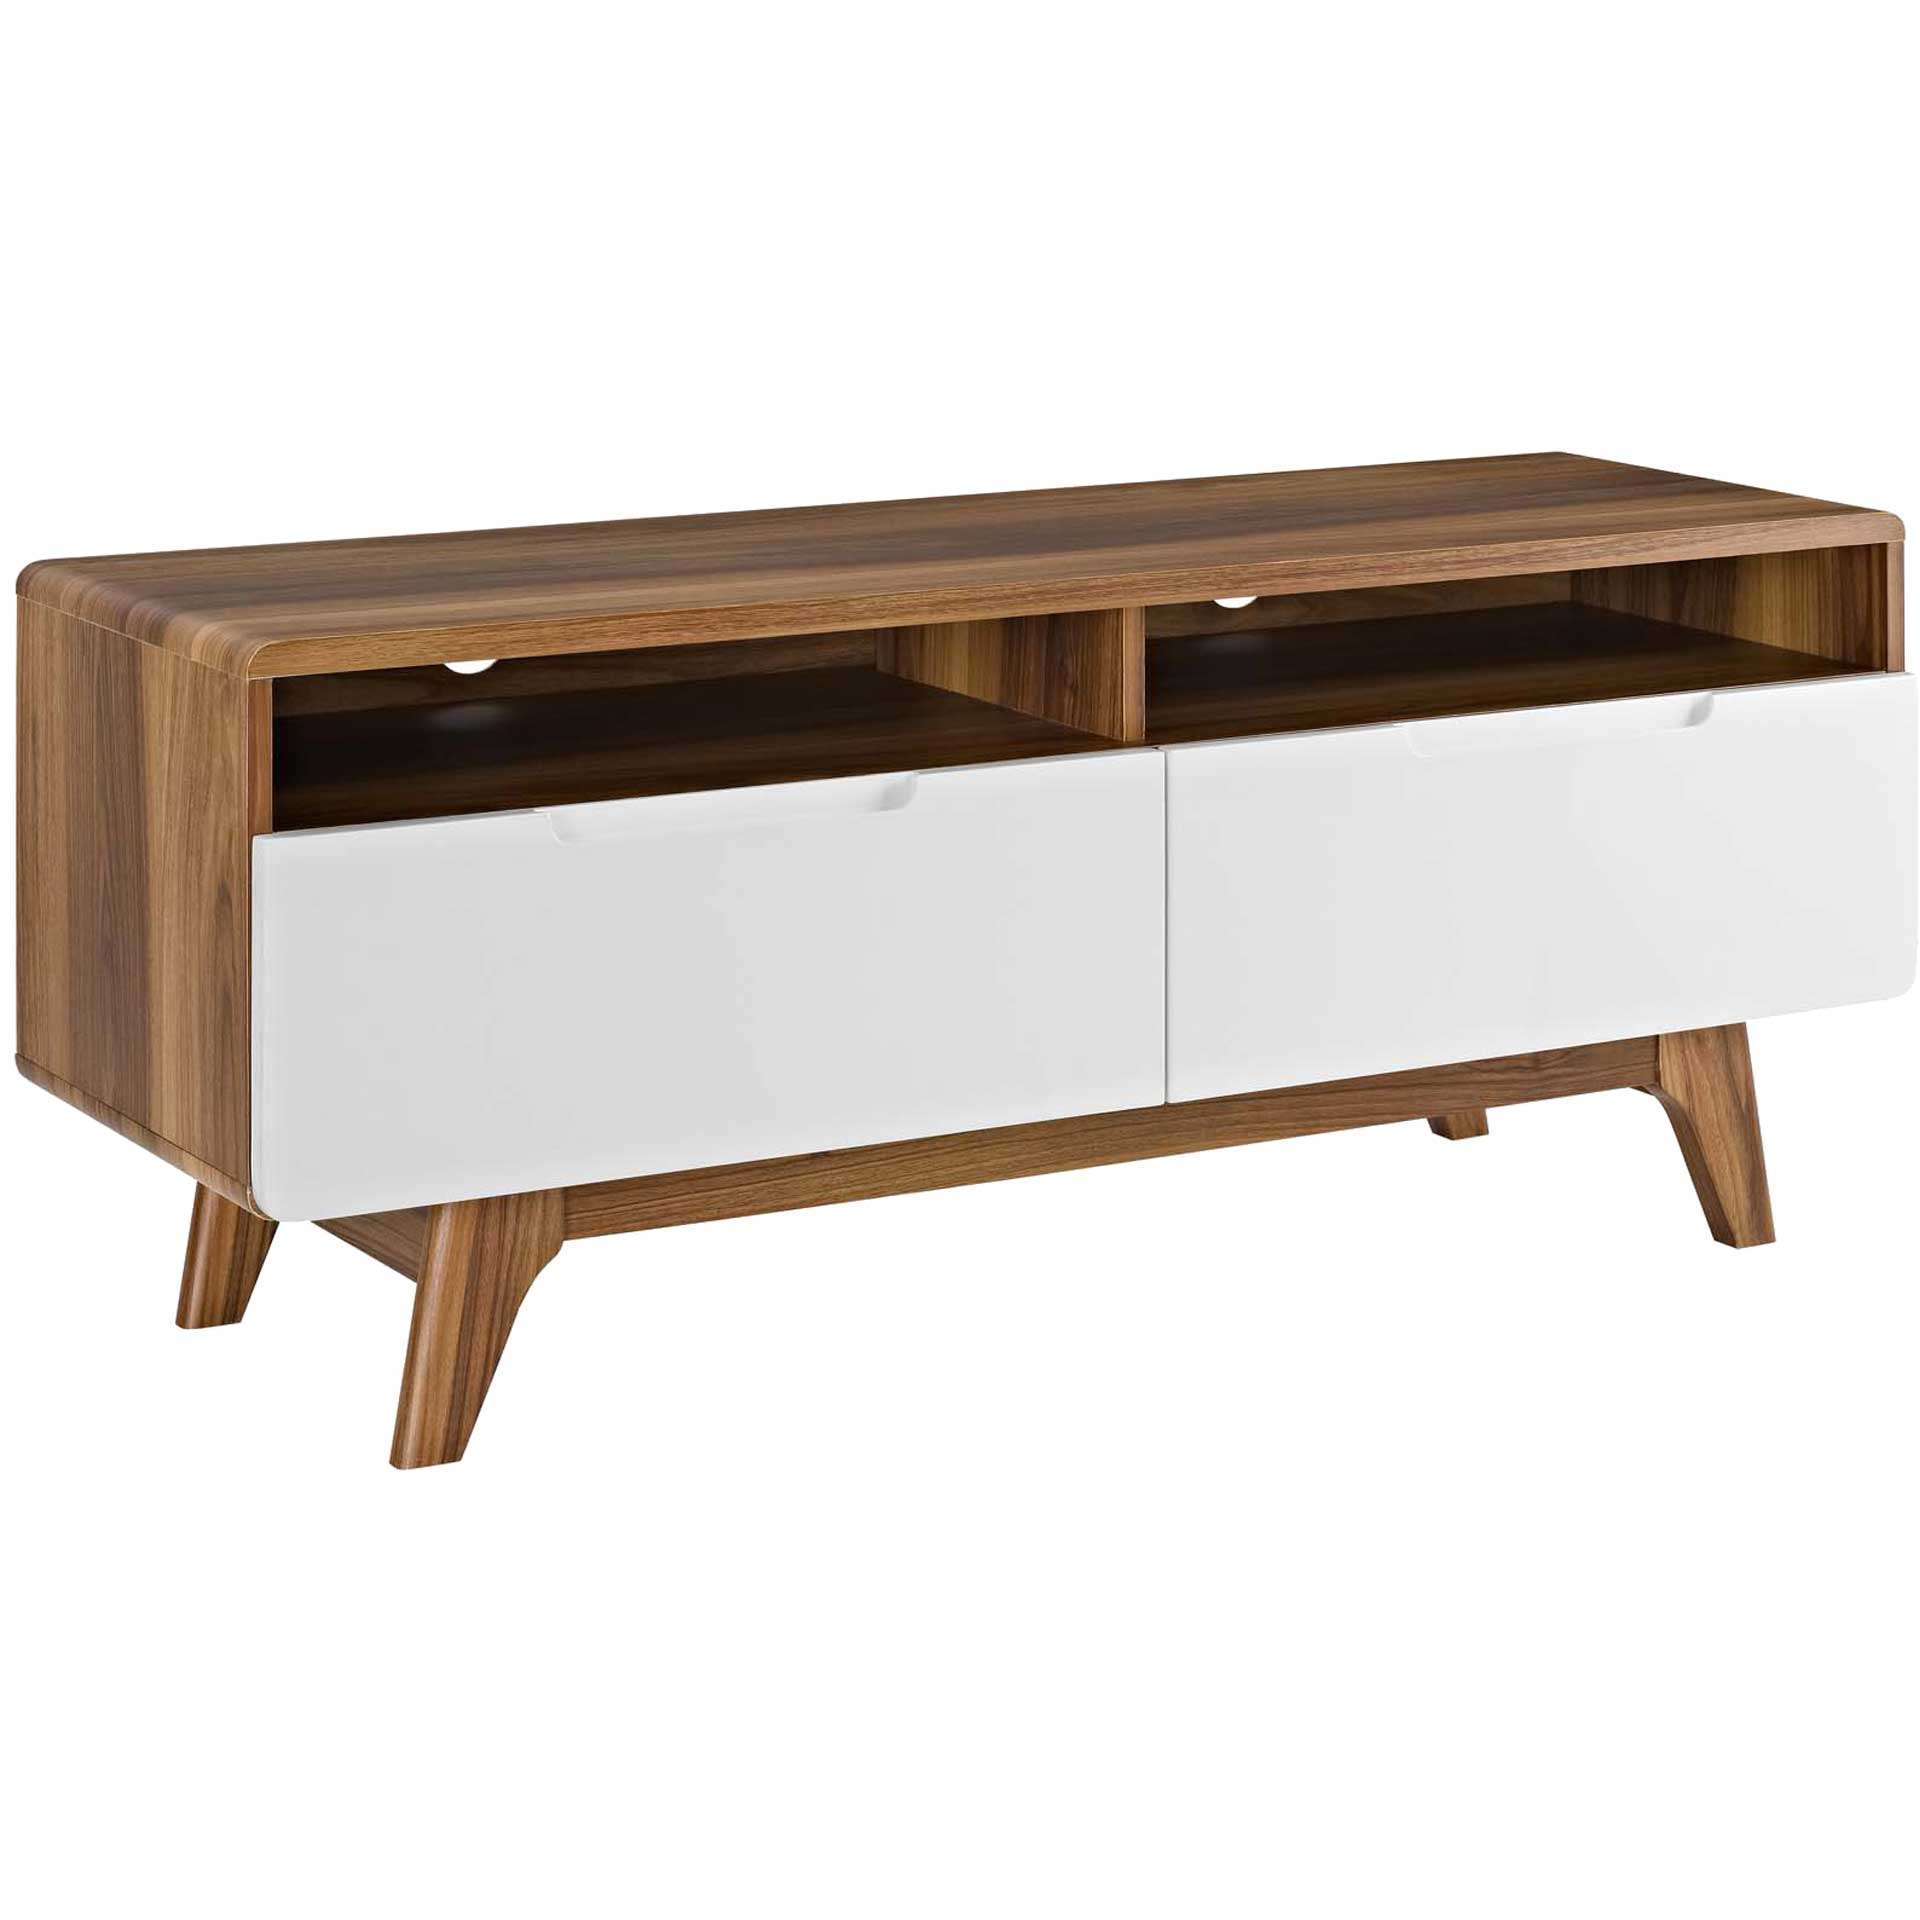 Orion TV Stand Walnut/White